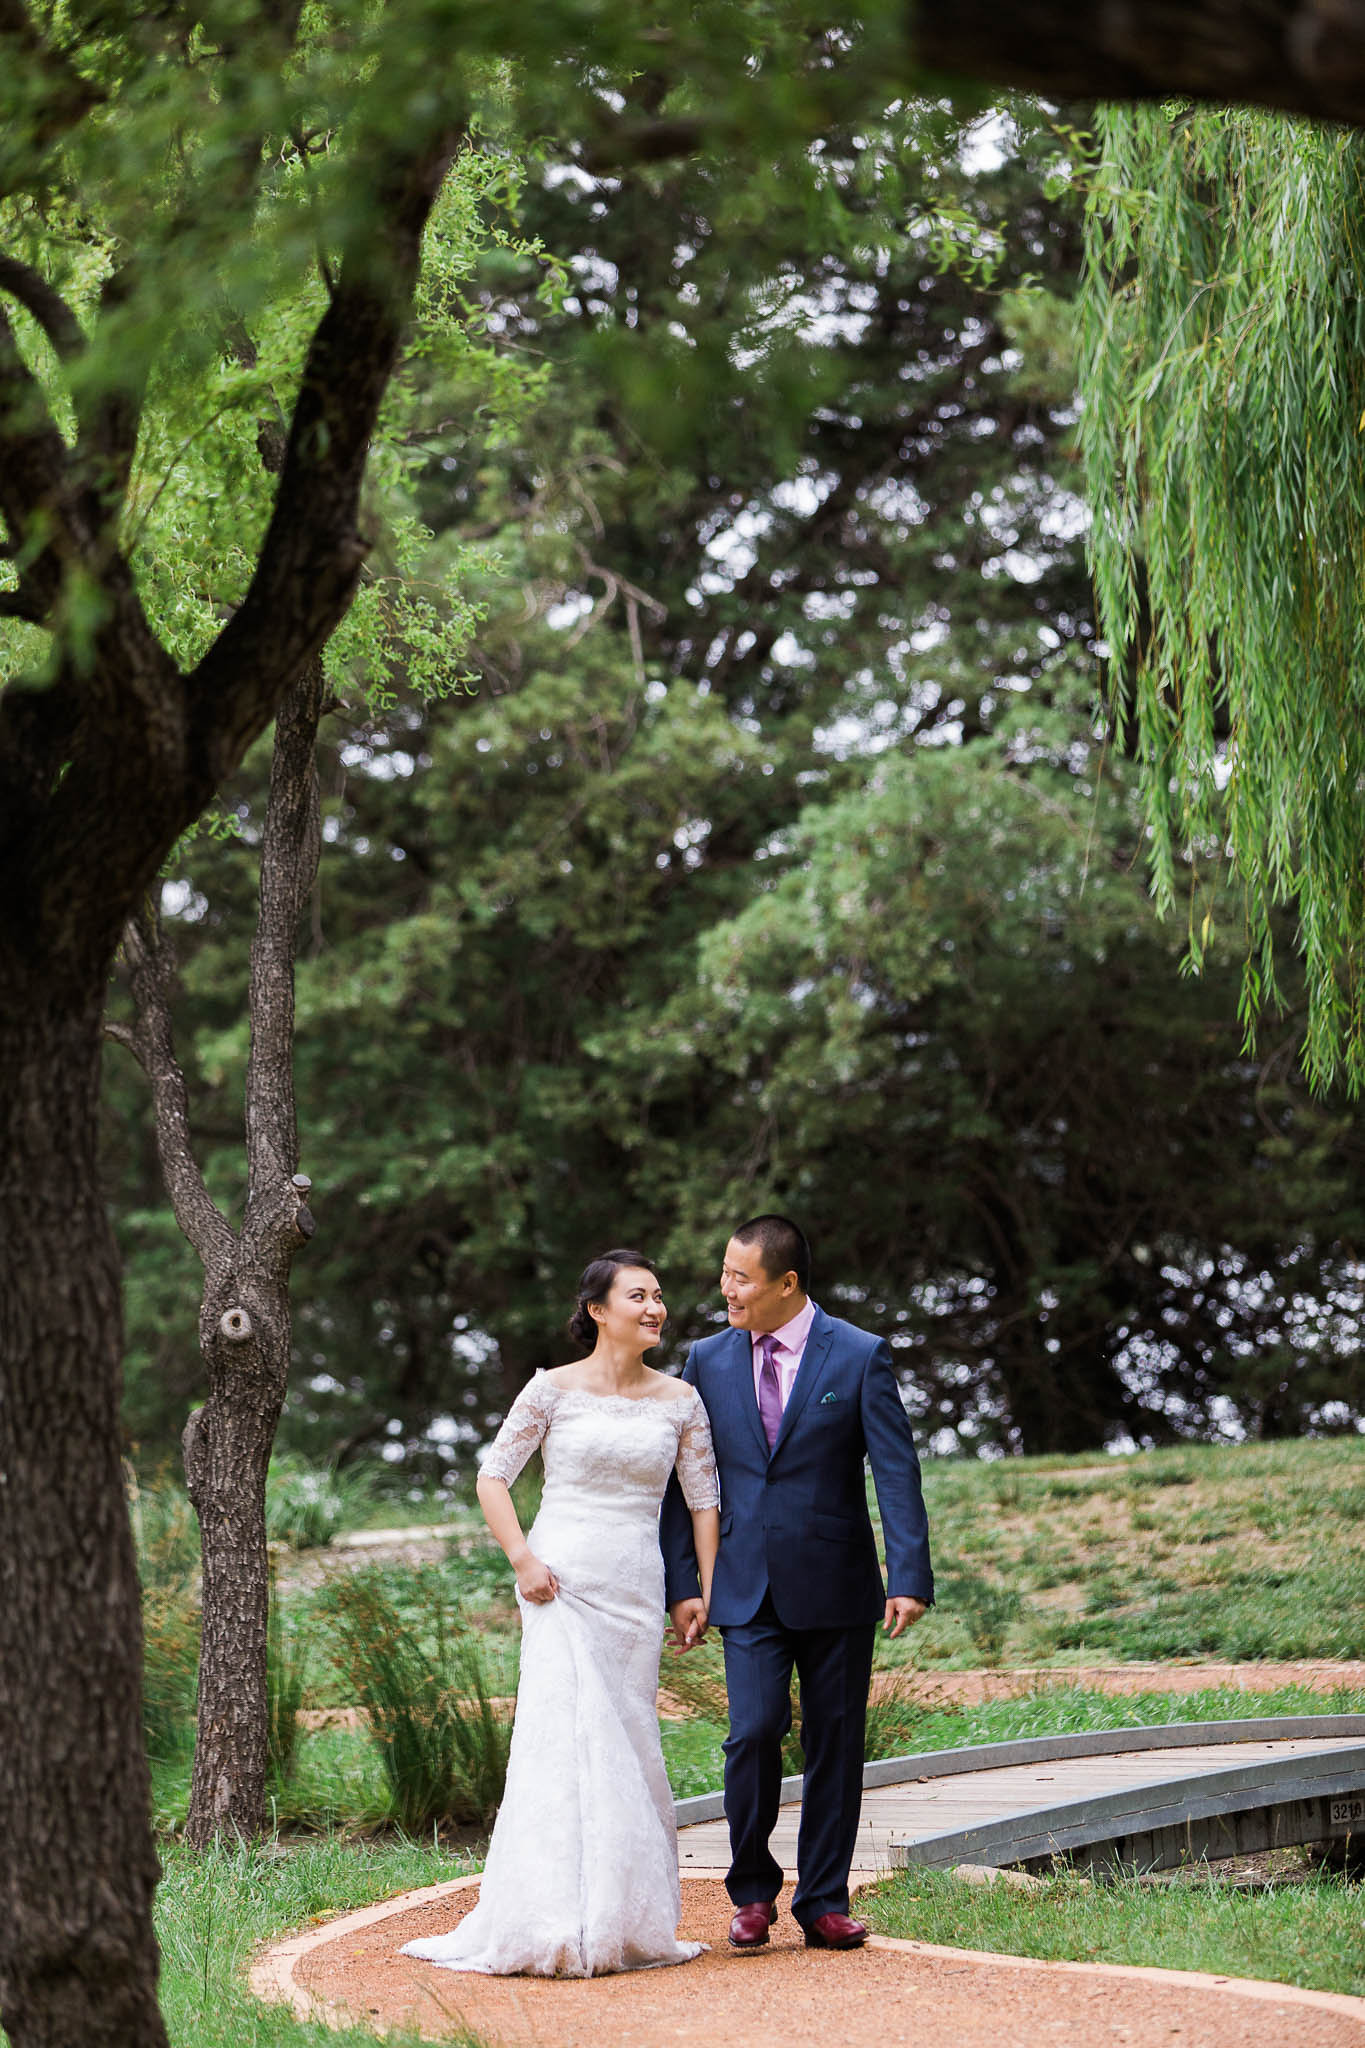 Bride and Groom Walking - Canberra Small Weddings - Western Park